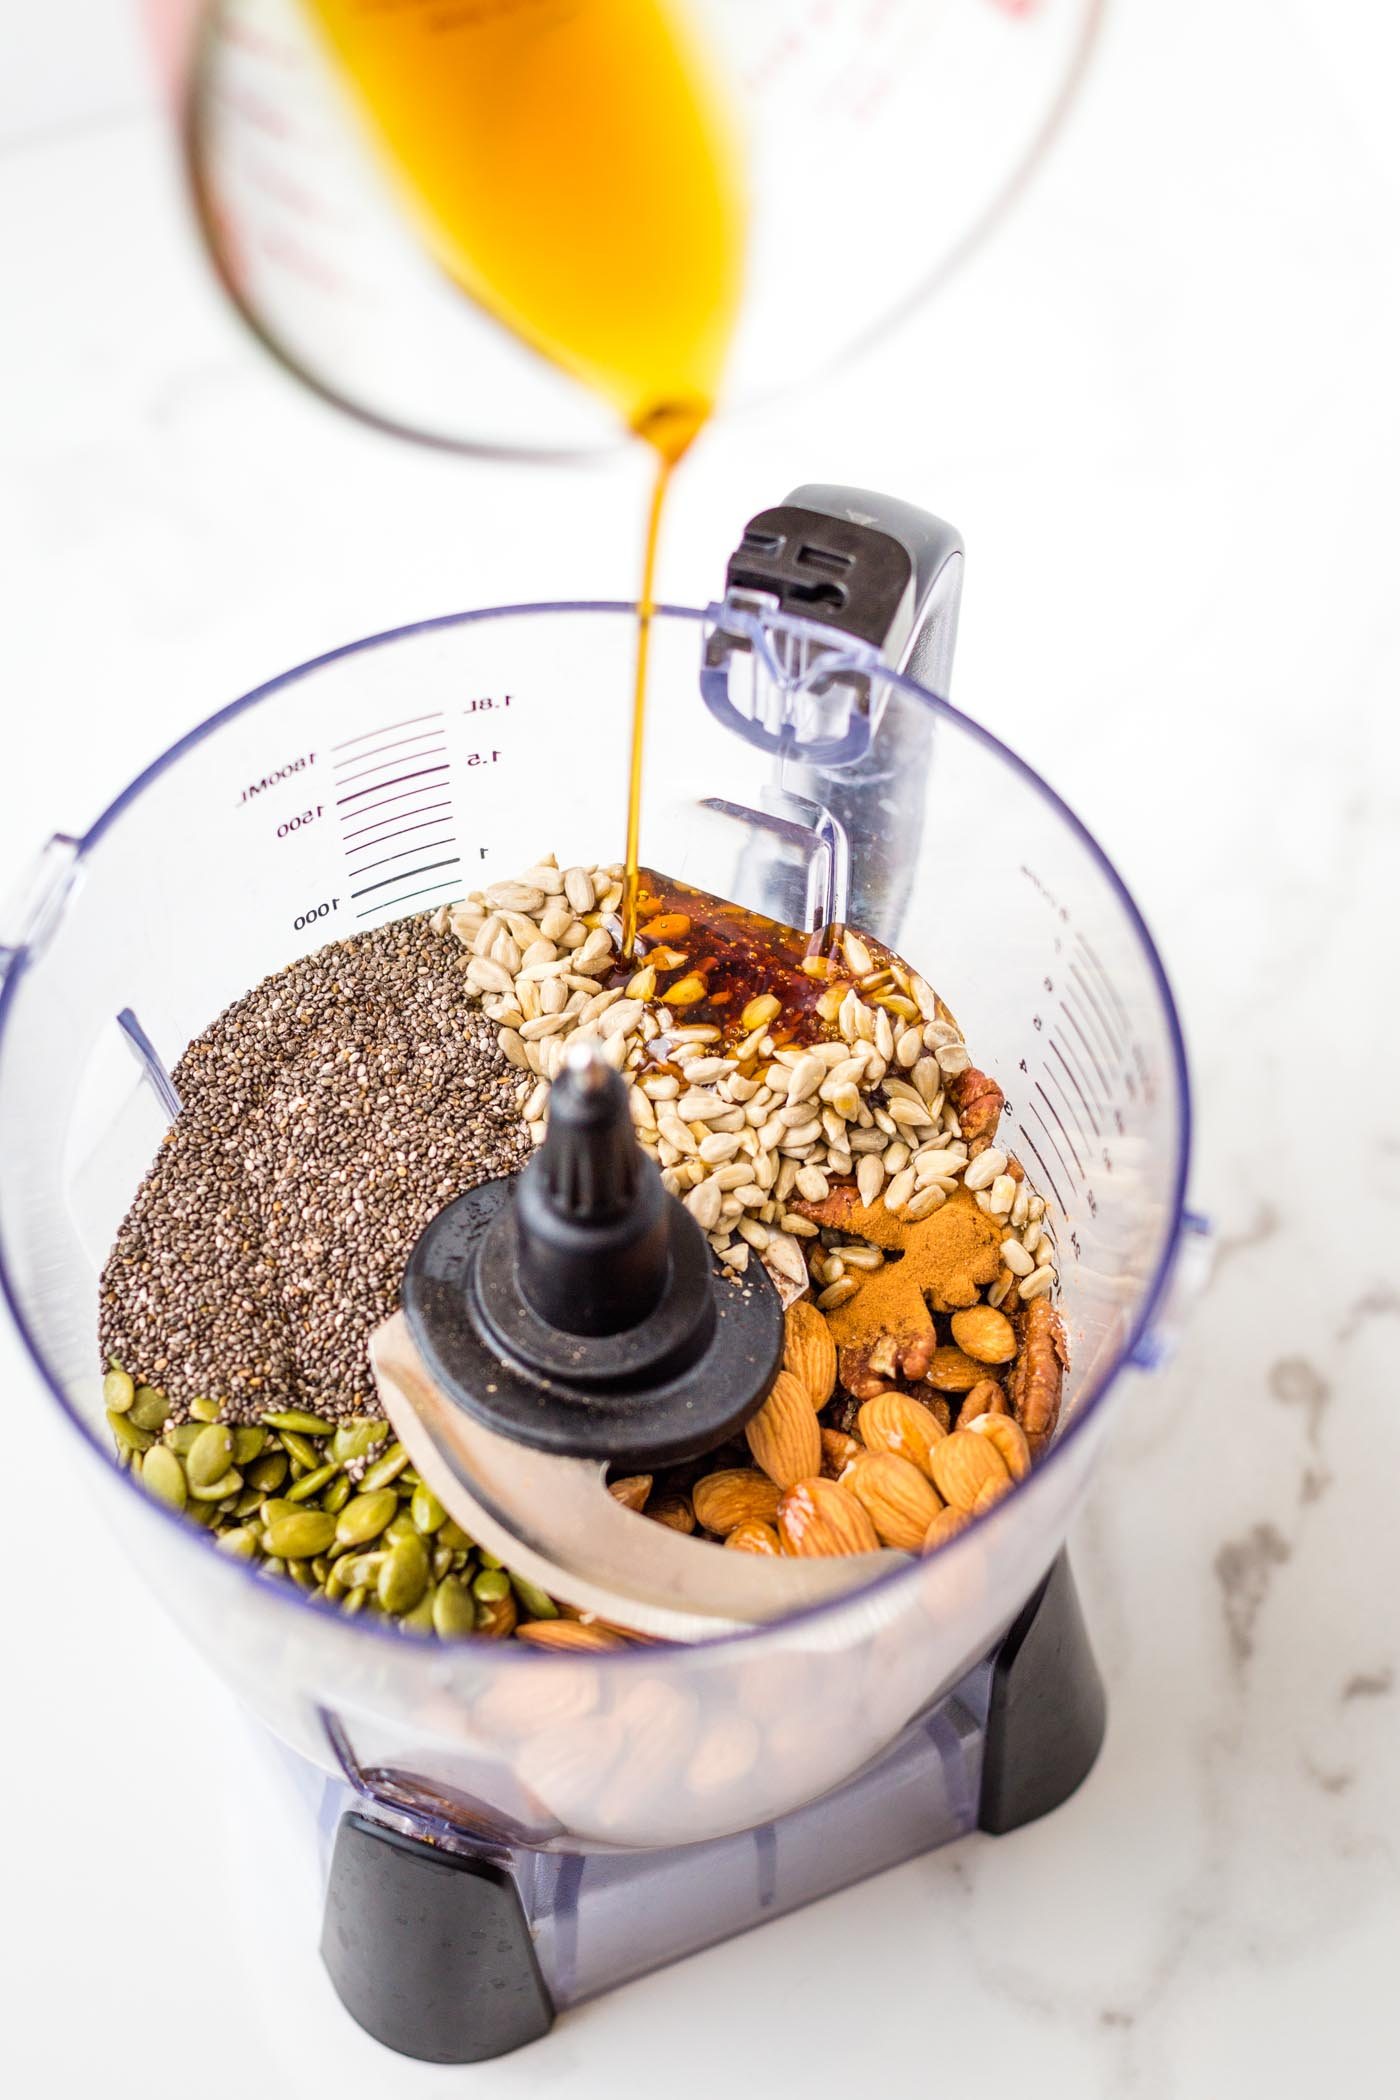 maple syrup being poured over nuts and seeds in food processor